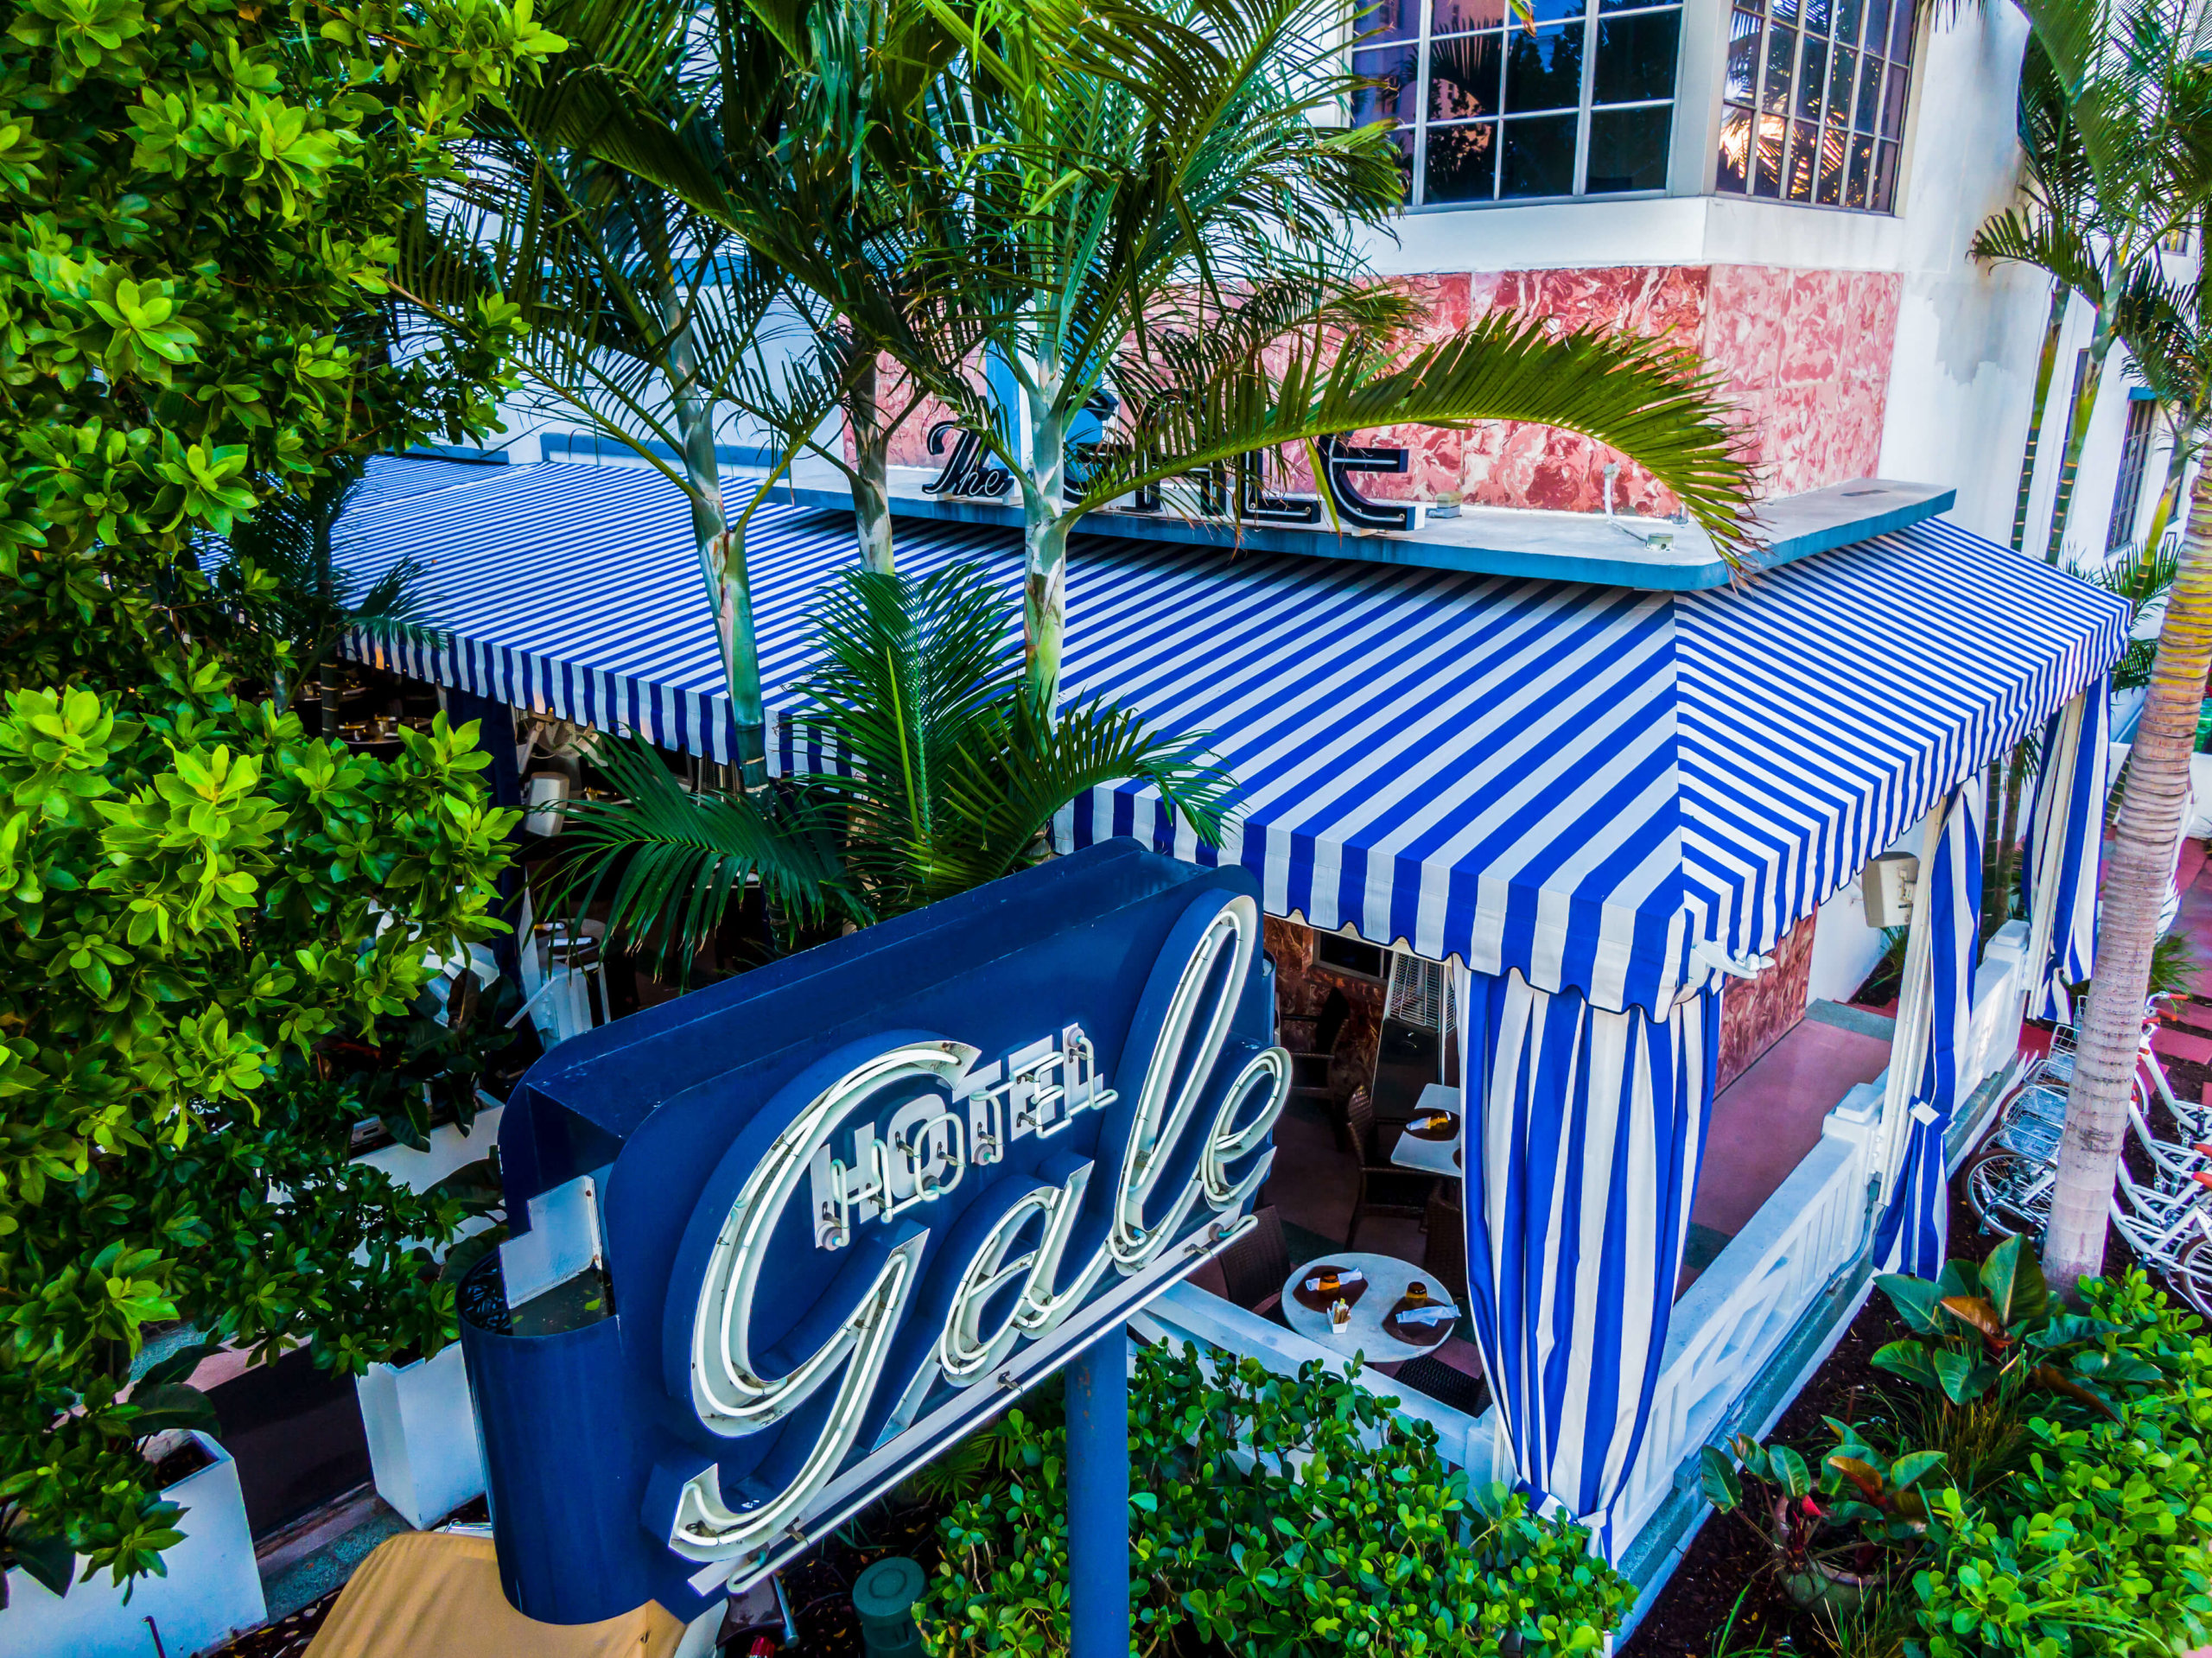 Gale Hotel - Custom awnings